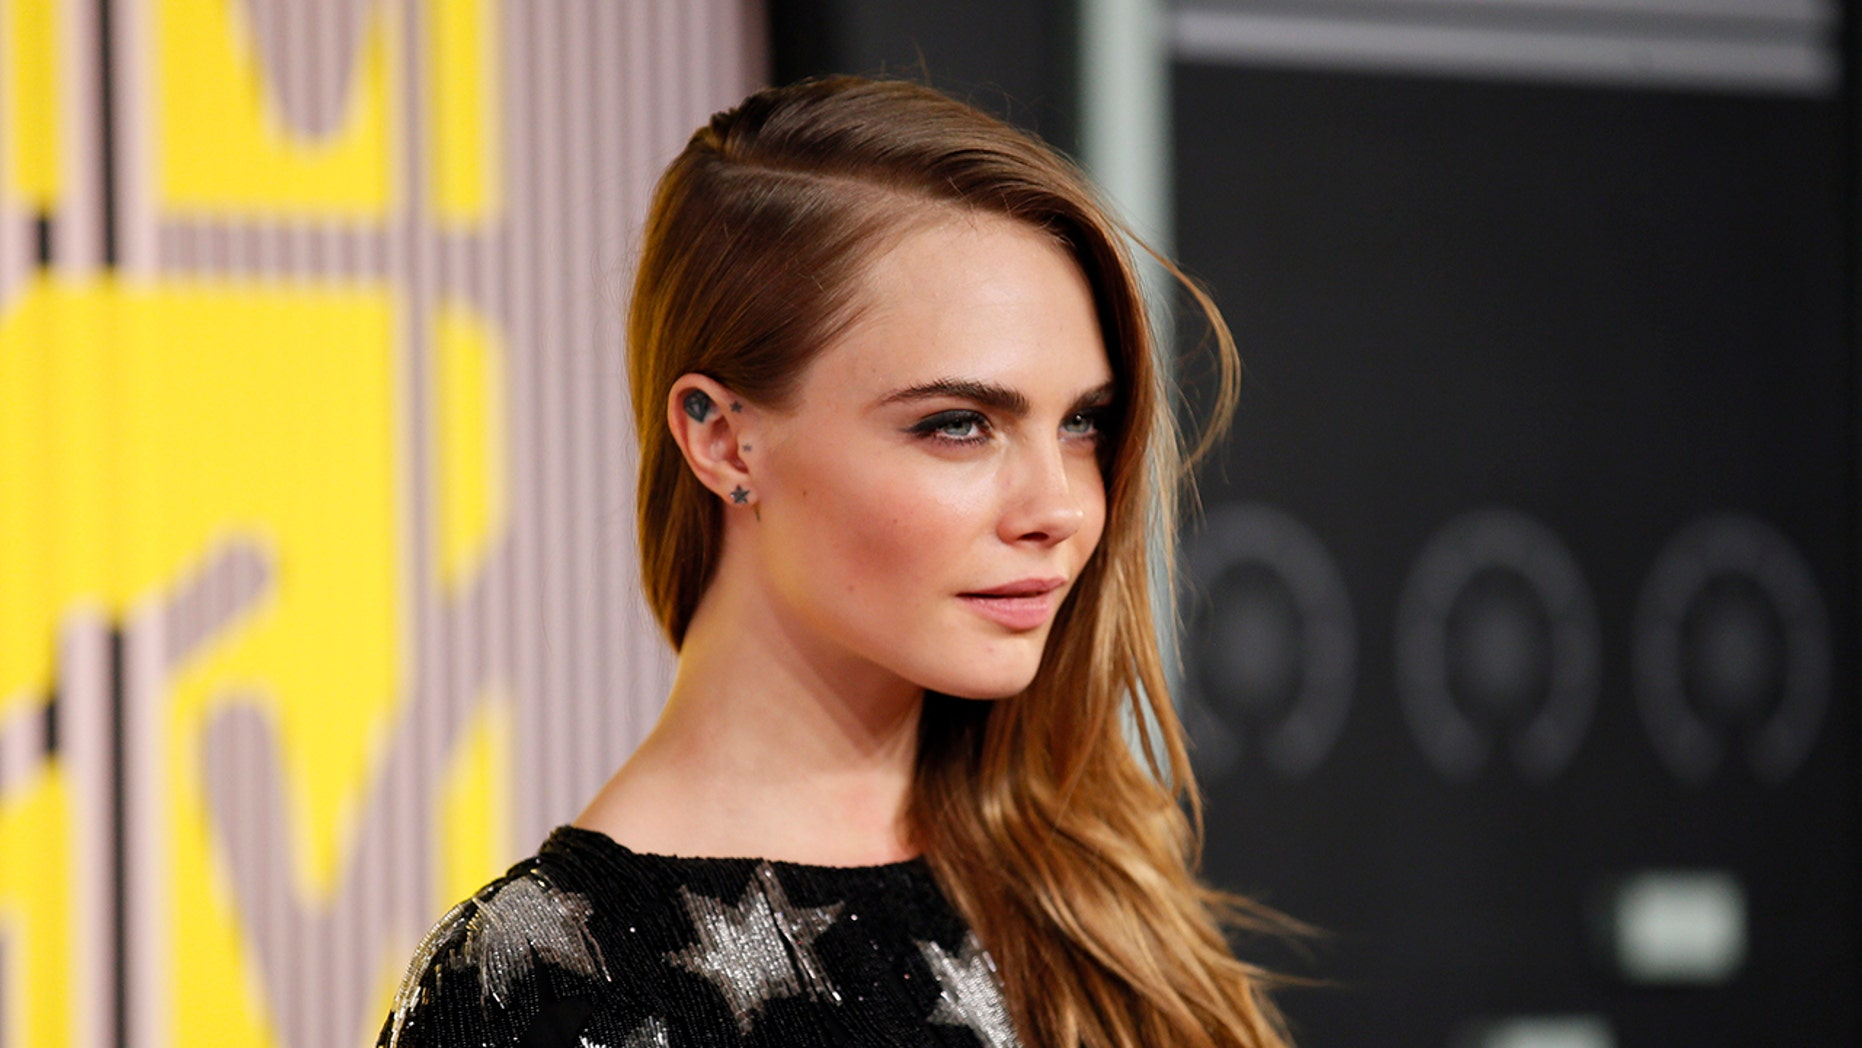 Cara Delevingne's new ad is being called 'tone deaf' for its depiction of cat-calling men.